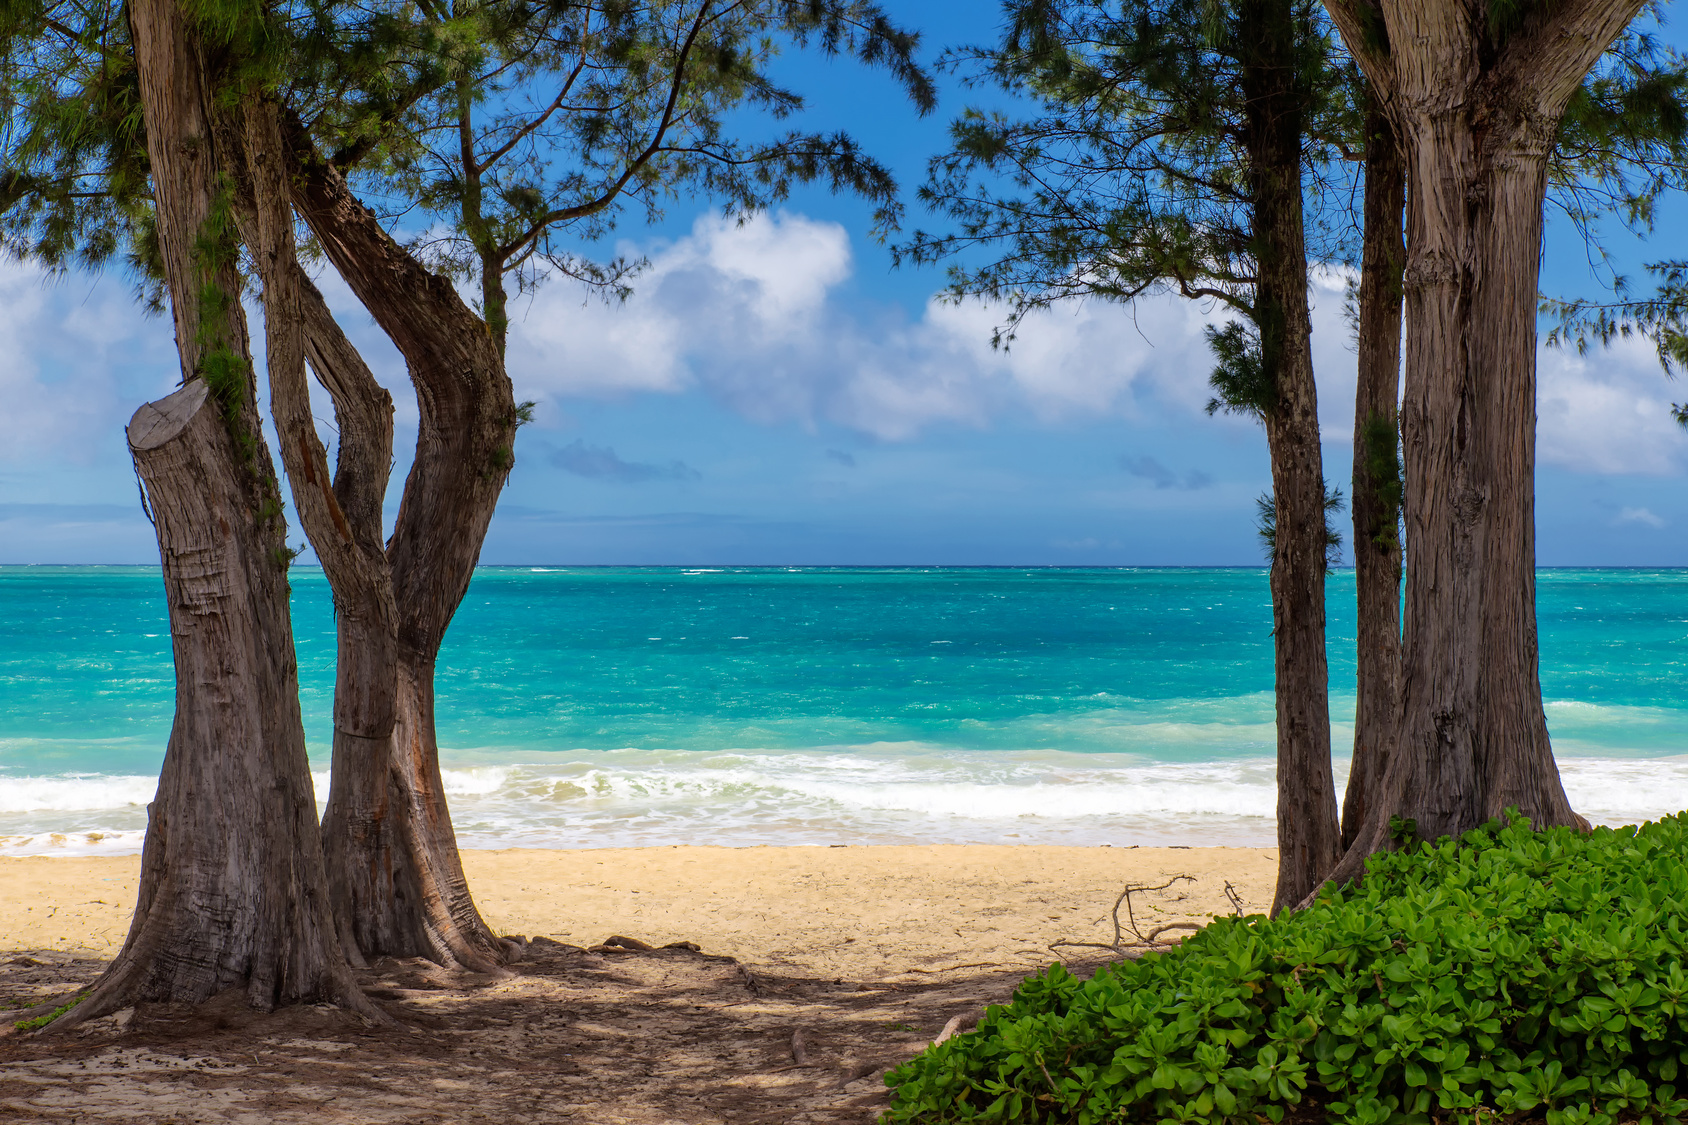 View of beatiful beach with turquoise water between two trees in Waimanalo, Oahu, Hawaii